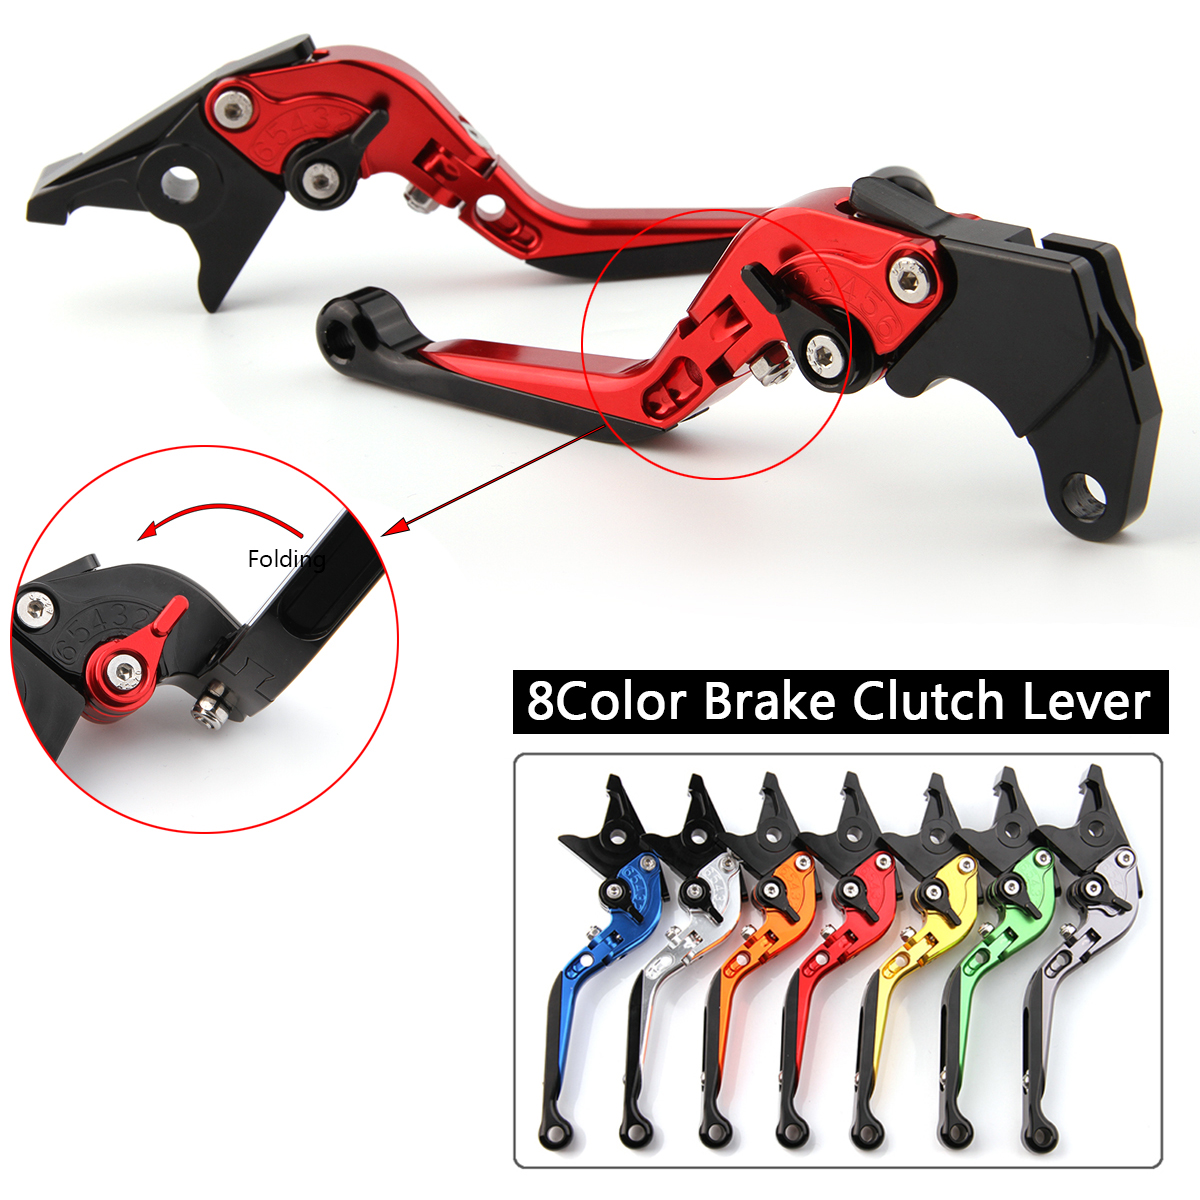 CNC Levers for Honda CBR900RR CB599 CB600 <font><b>Hornet</b></font> CBR600 CB919 NC700 Motorcycle Adjustable Folding Extendable Brake Clutch Levers image